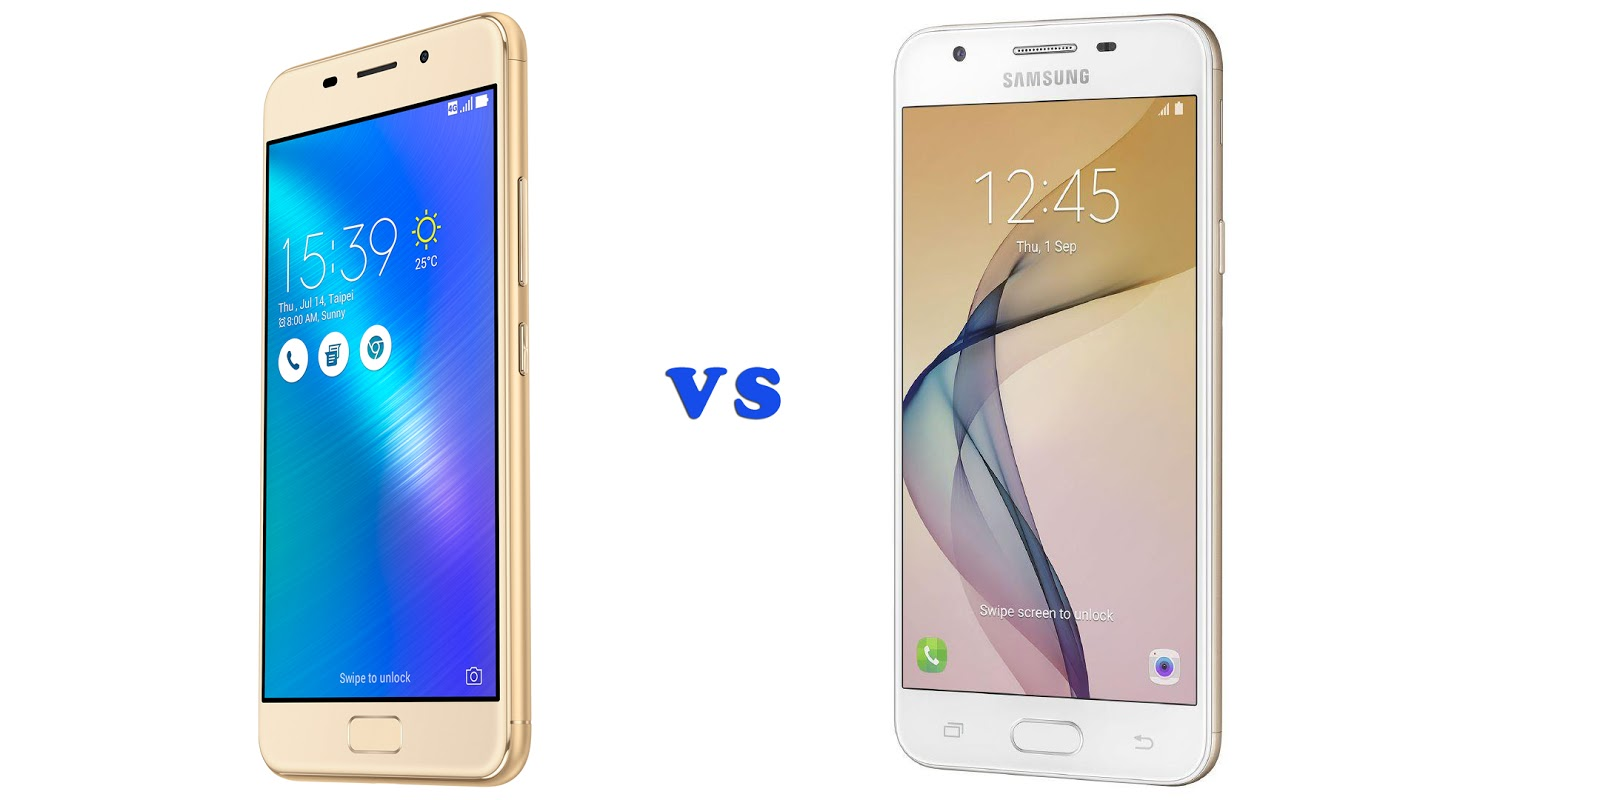 Comparison of Asus Zenfone 3S Max with Samsung Galaxy J5 Prime